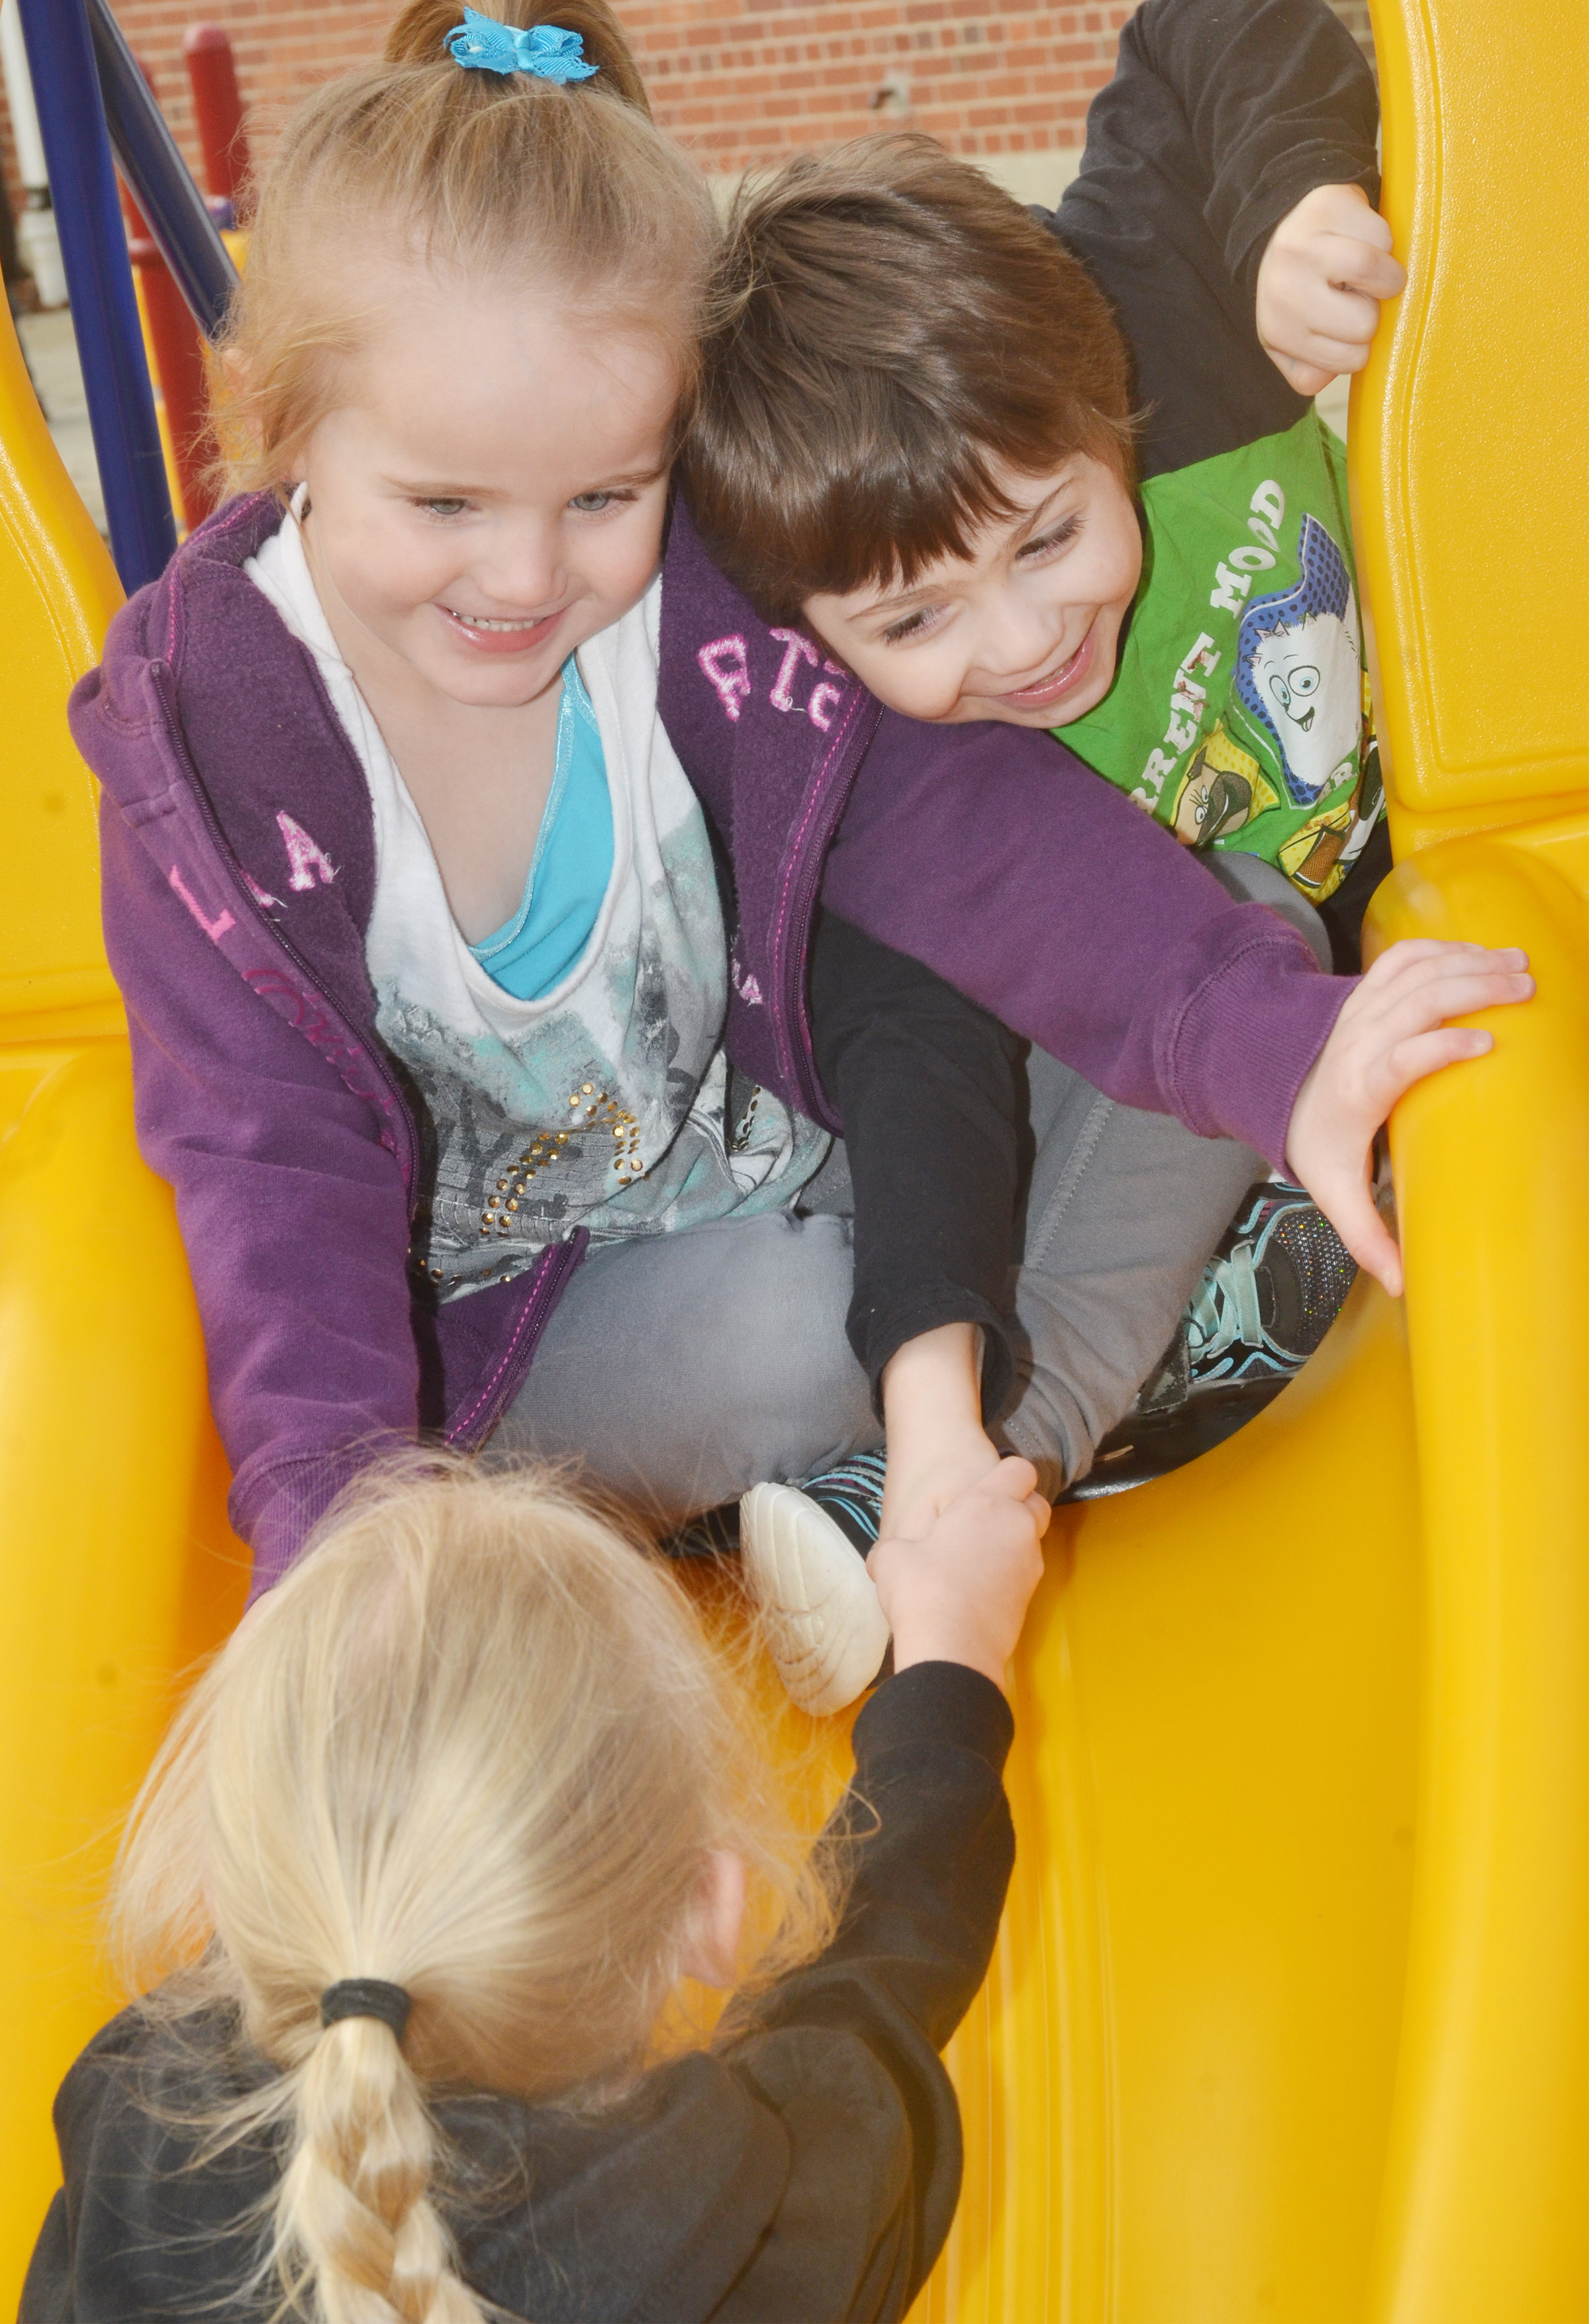 CES preschool students Trinity Dye, at left, and Josiah Dean laugh as they slide down the slide – with some help from Alinna Bray – as they and their classmates enjoy some playground time.